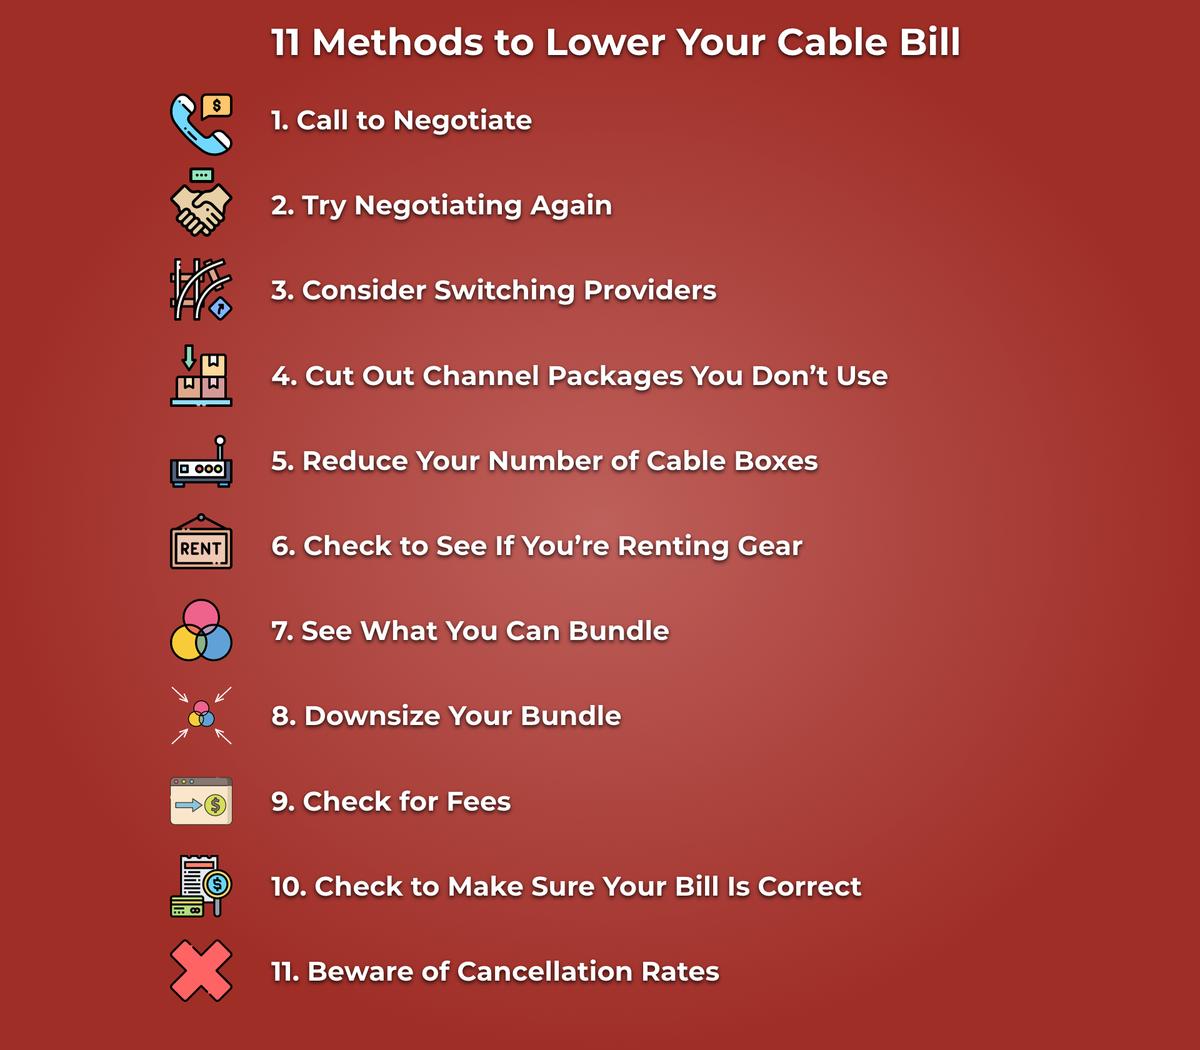 11 Methods to Lower Your Cable Bill